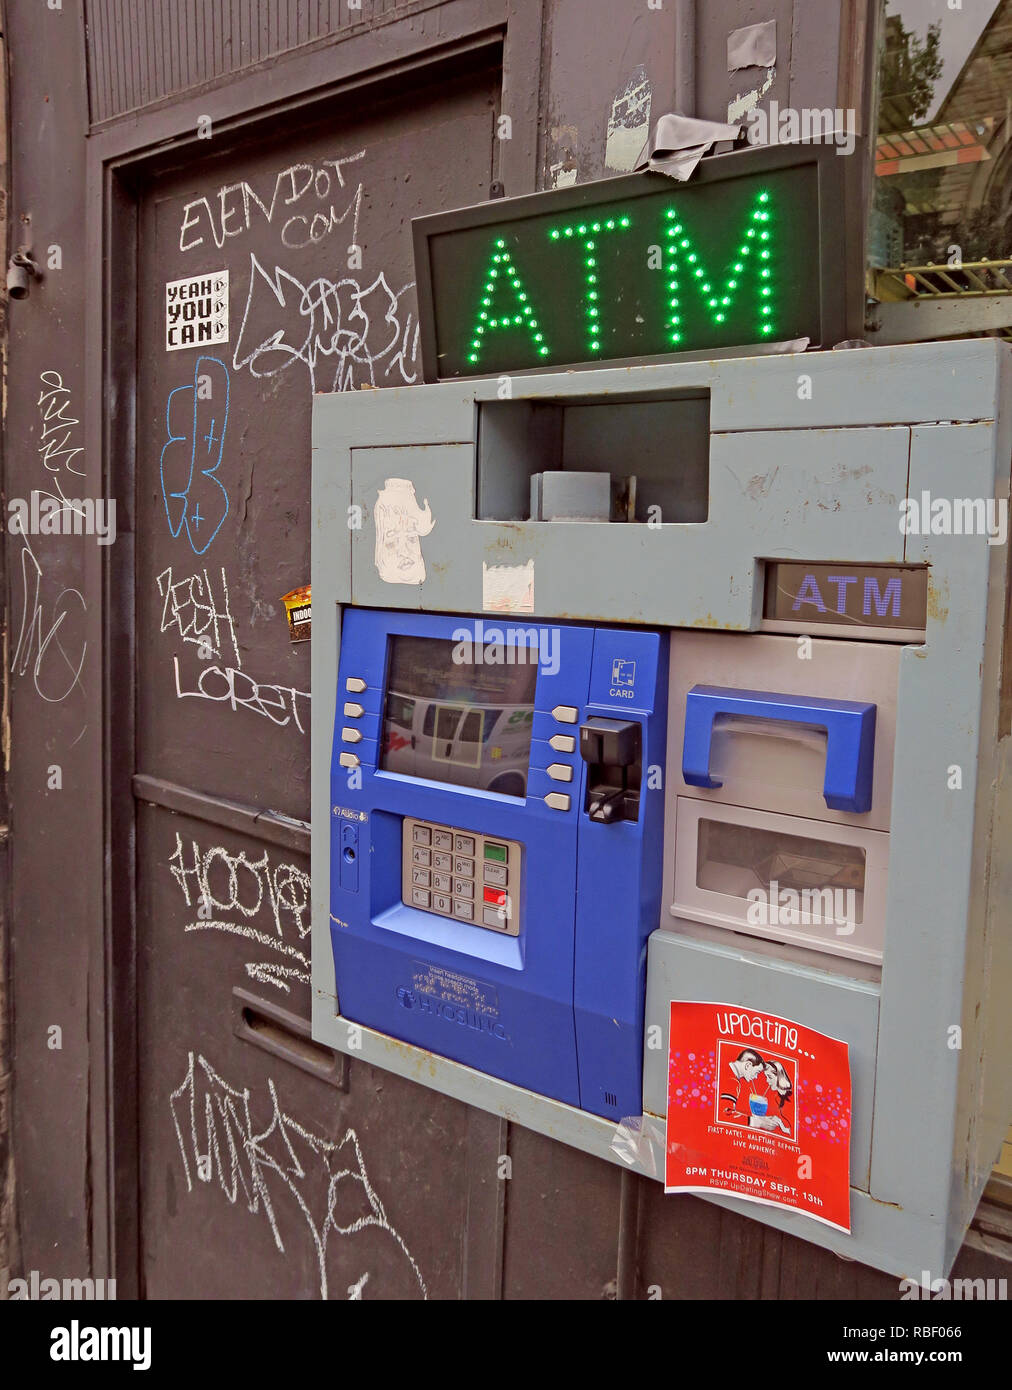 US Street ATM, Hyosung ATM, Saint Marks Place, East Village, Manhattan, New York City, NYC, NY , USA - Stock Image